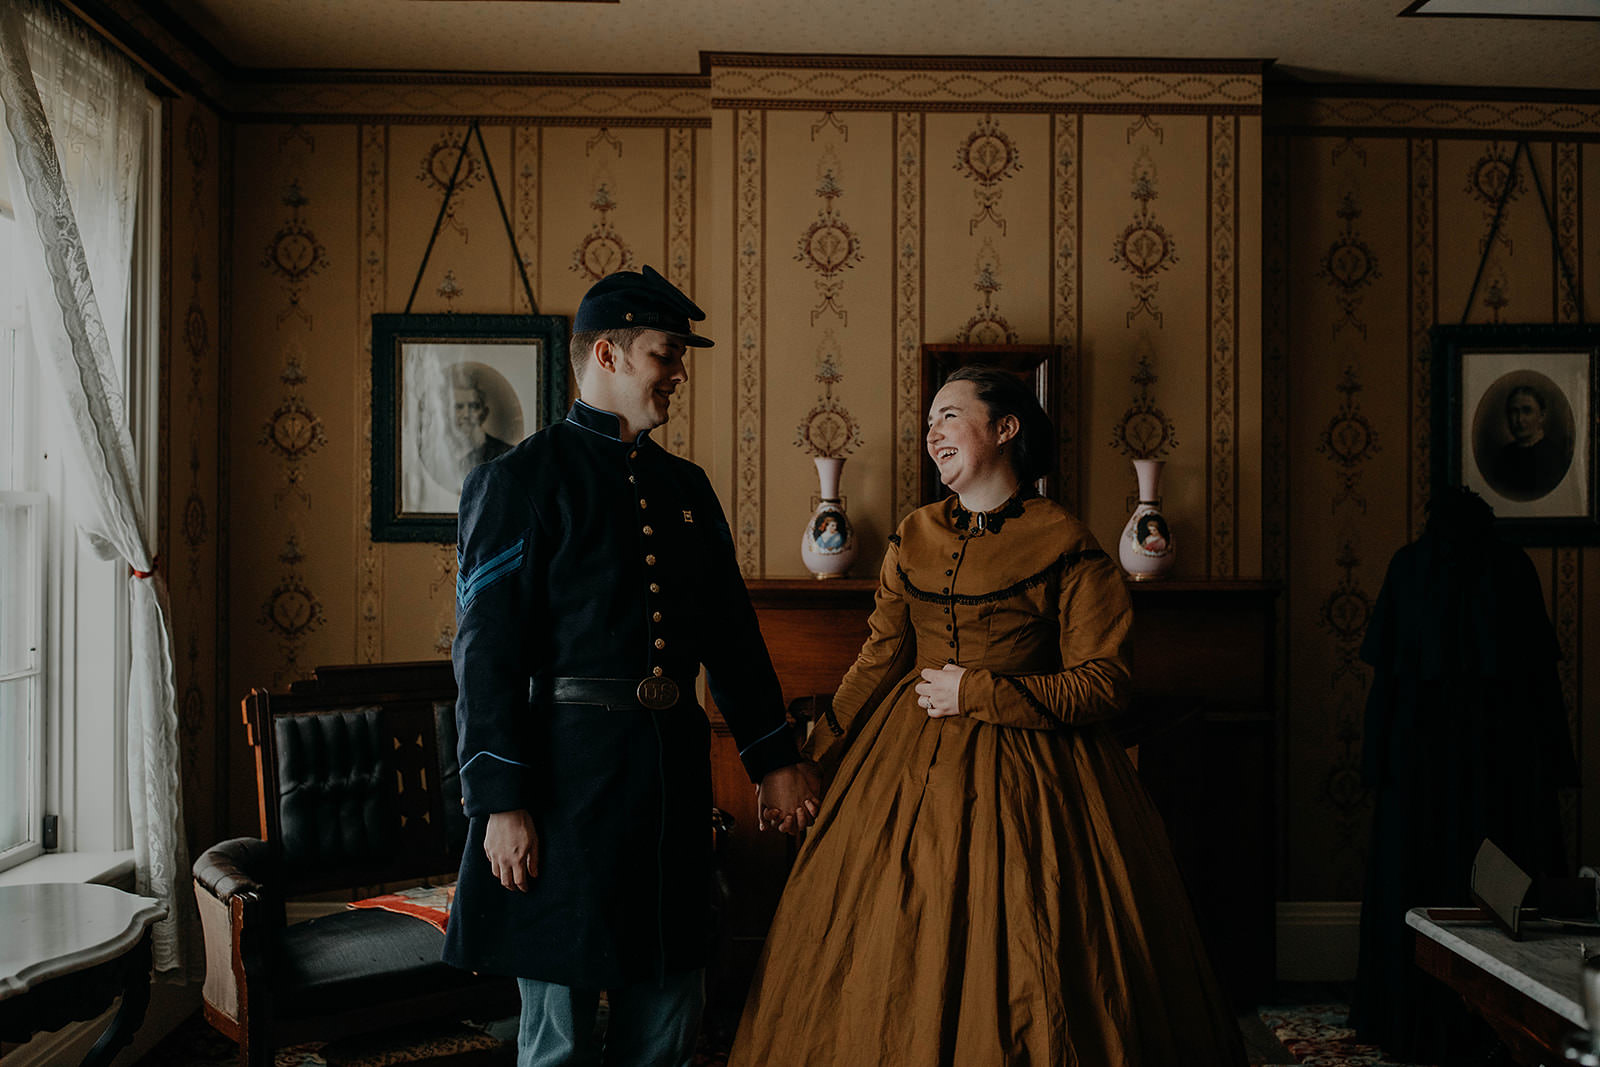 Civil war renactment engagement photos columbus ohio wedding and engagement photographer grace e jones 19.jpg